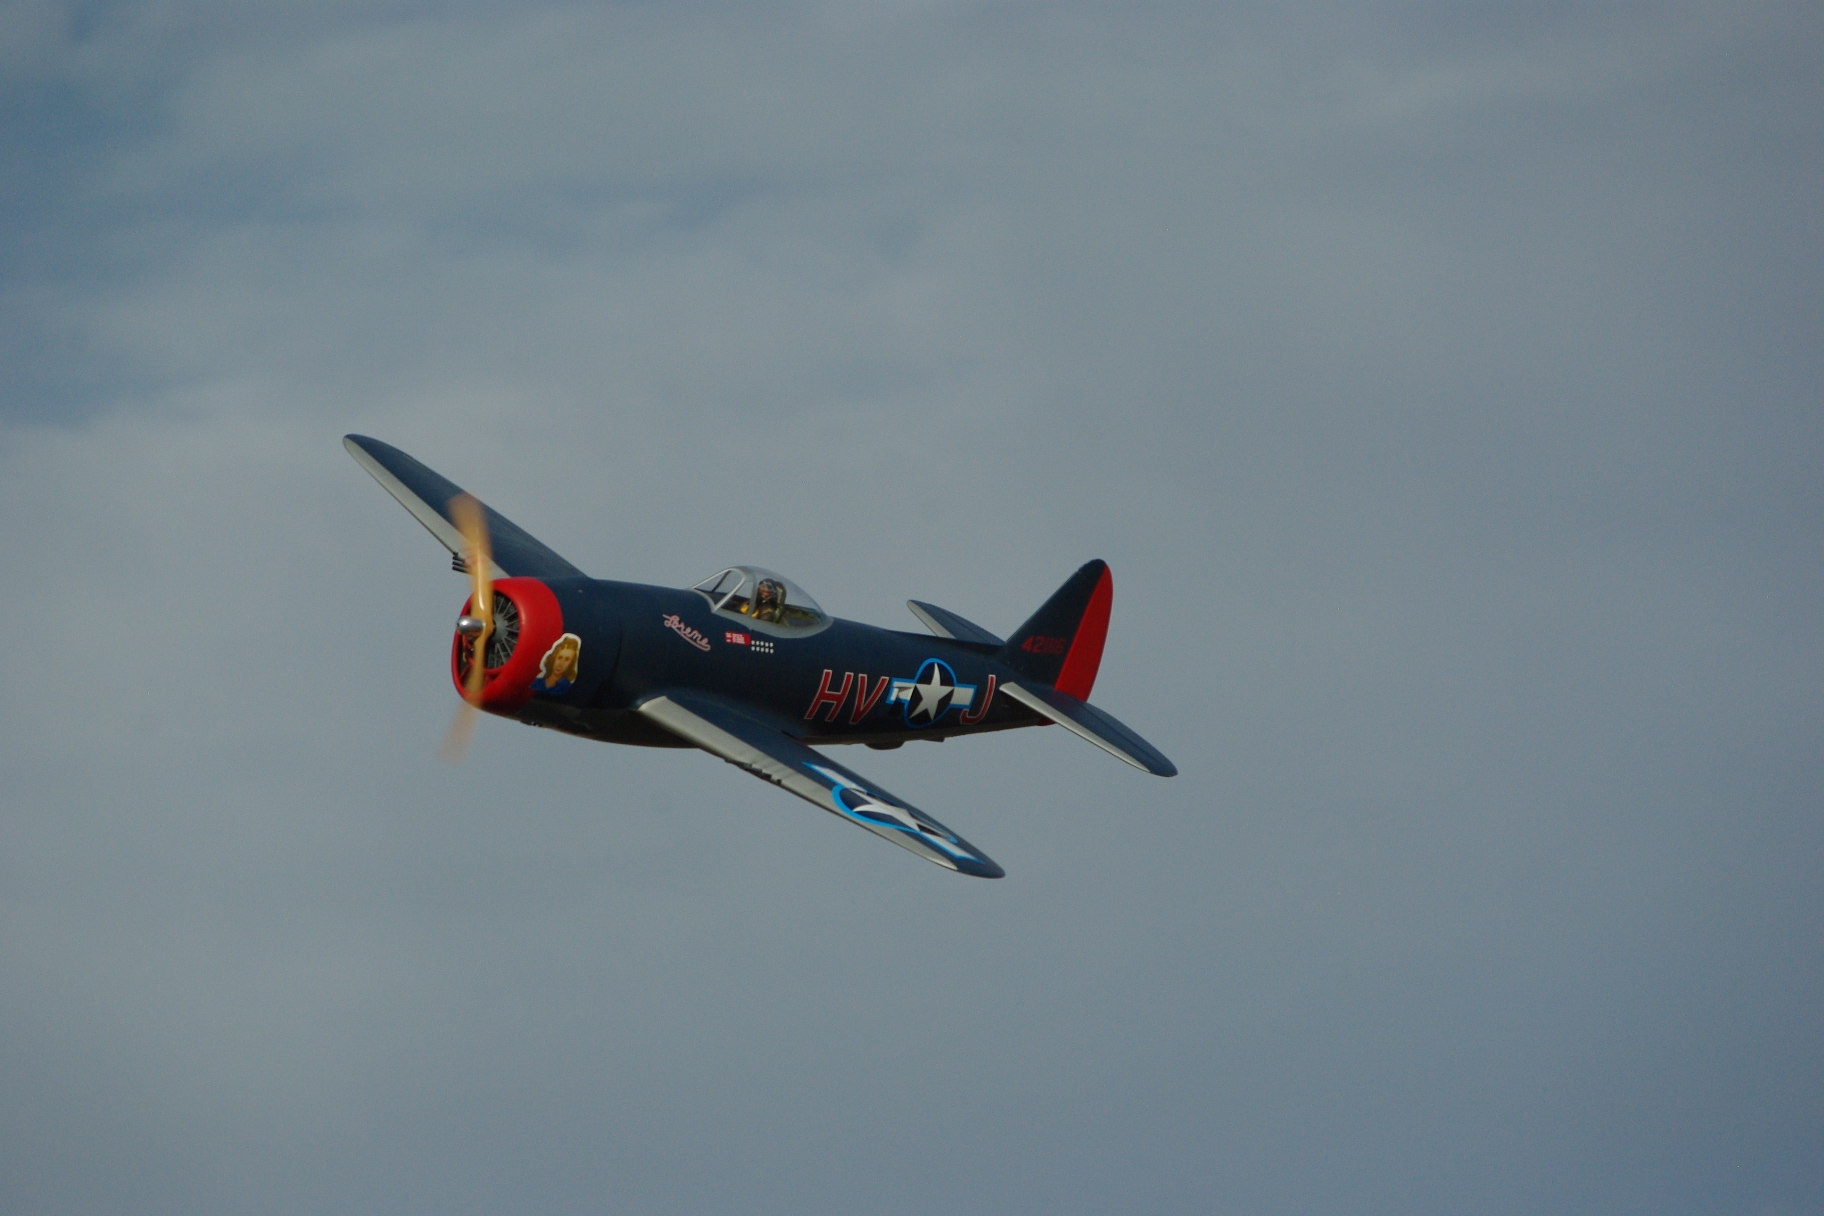 Click image for larger version  Name:WarBirds 11 1315.JPG Views:29 Size:725.8 KB ID:1970104